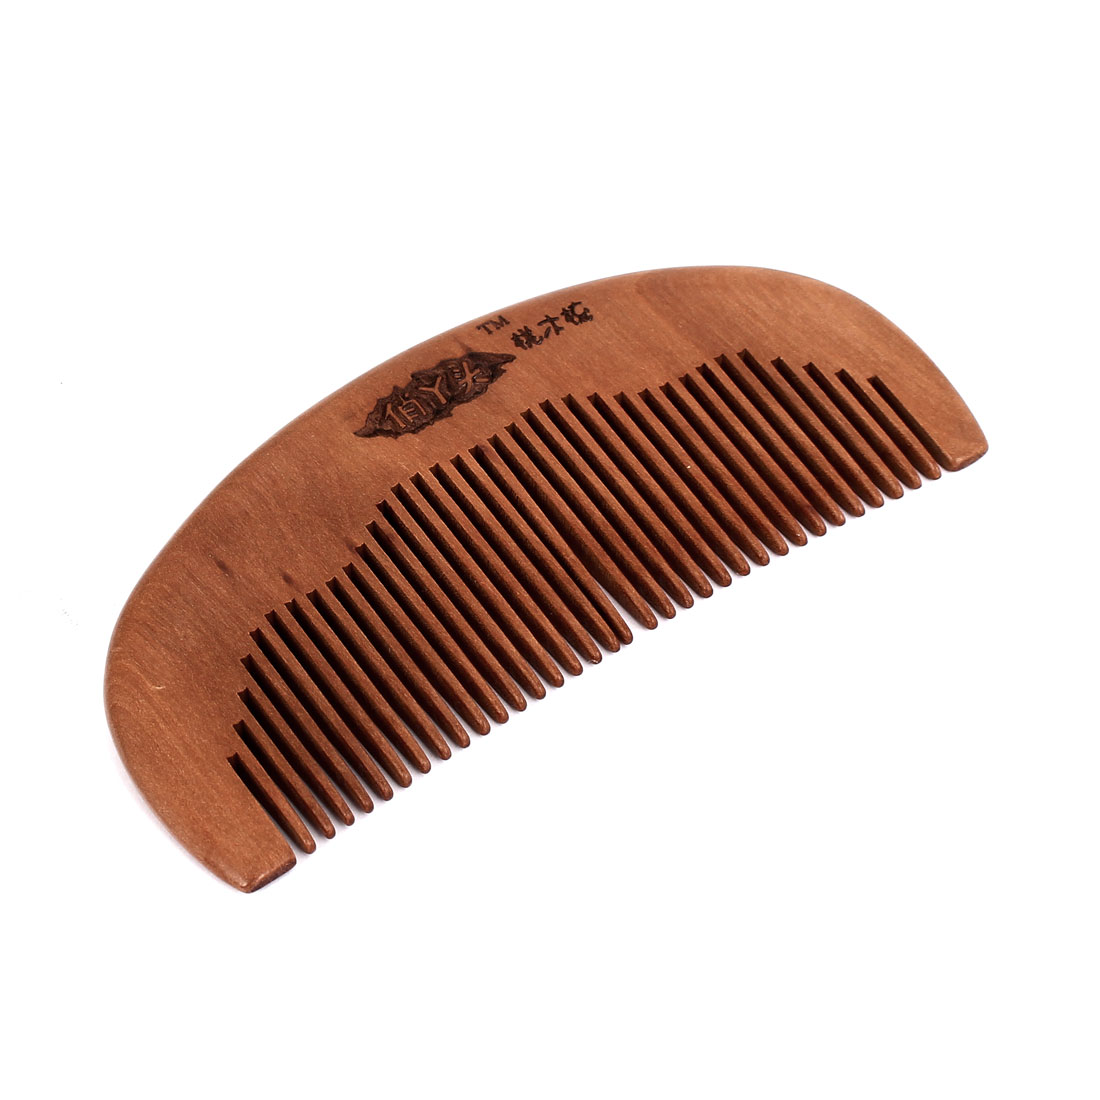 "Unisex Wooden 4.7"" Length Healthy Head Care Hand Craft Hair Comb"